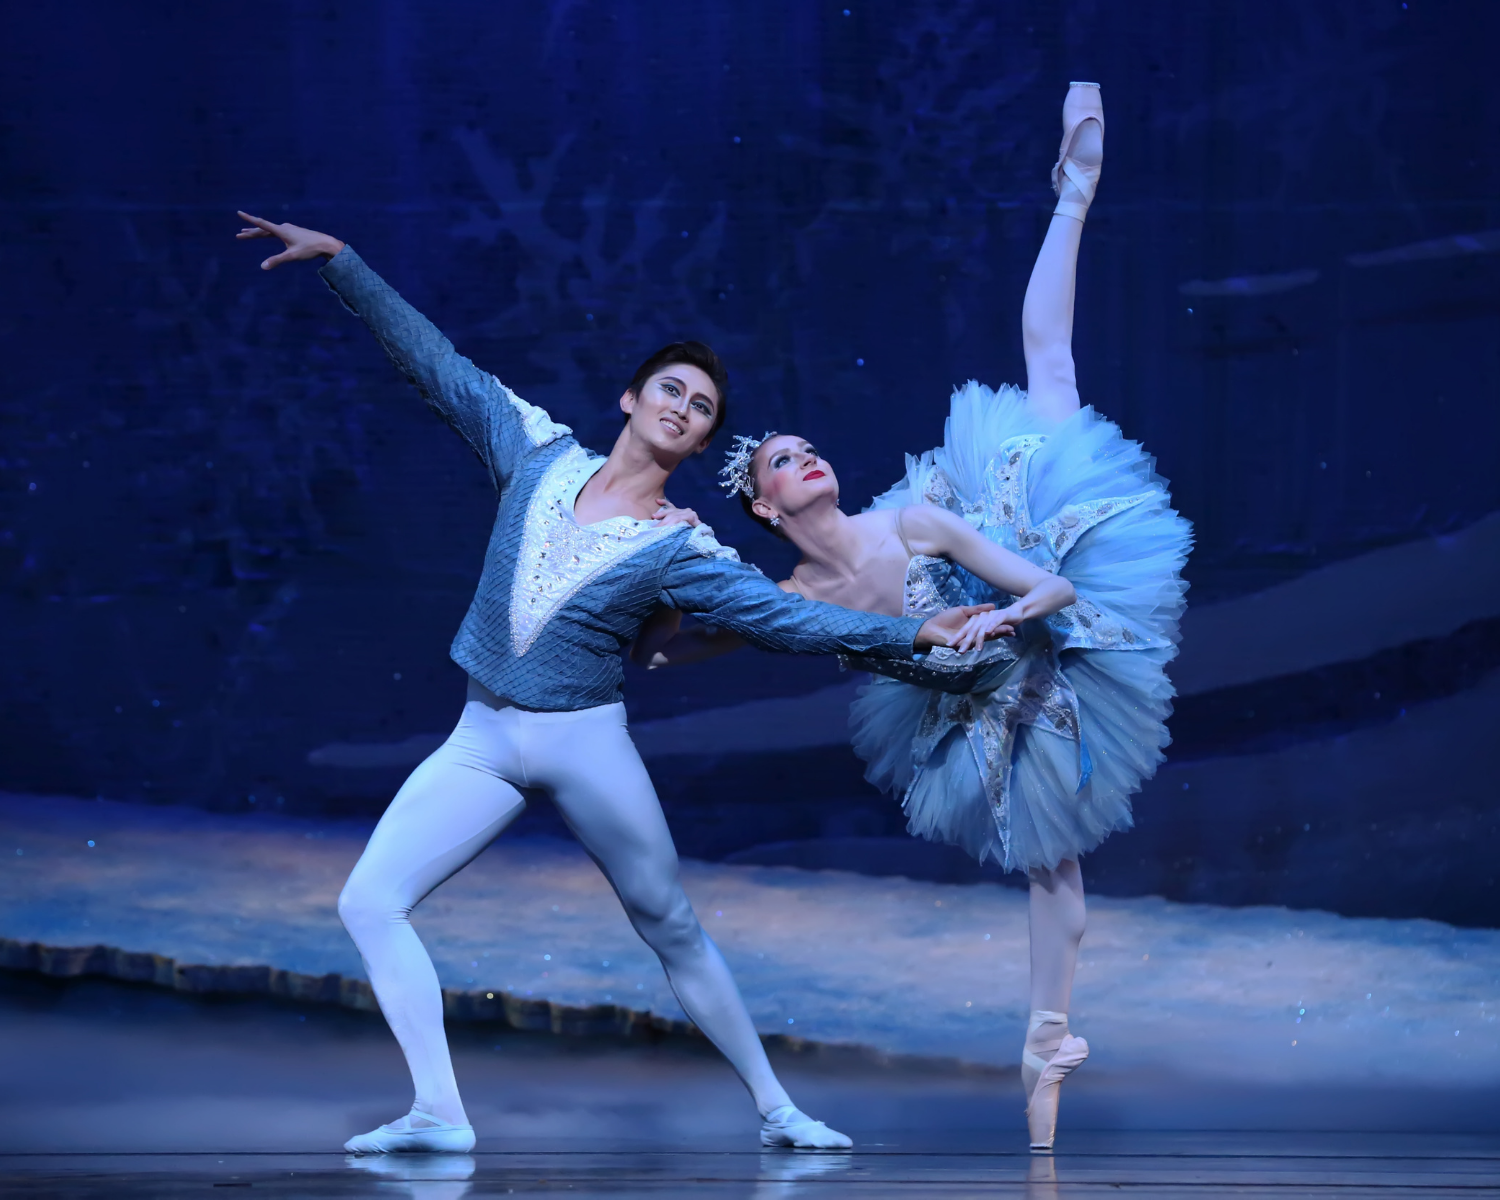 Snow Queen in penche while partnering with the Snow Prince in The Nutcracker